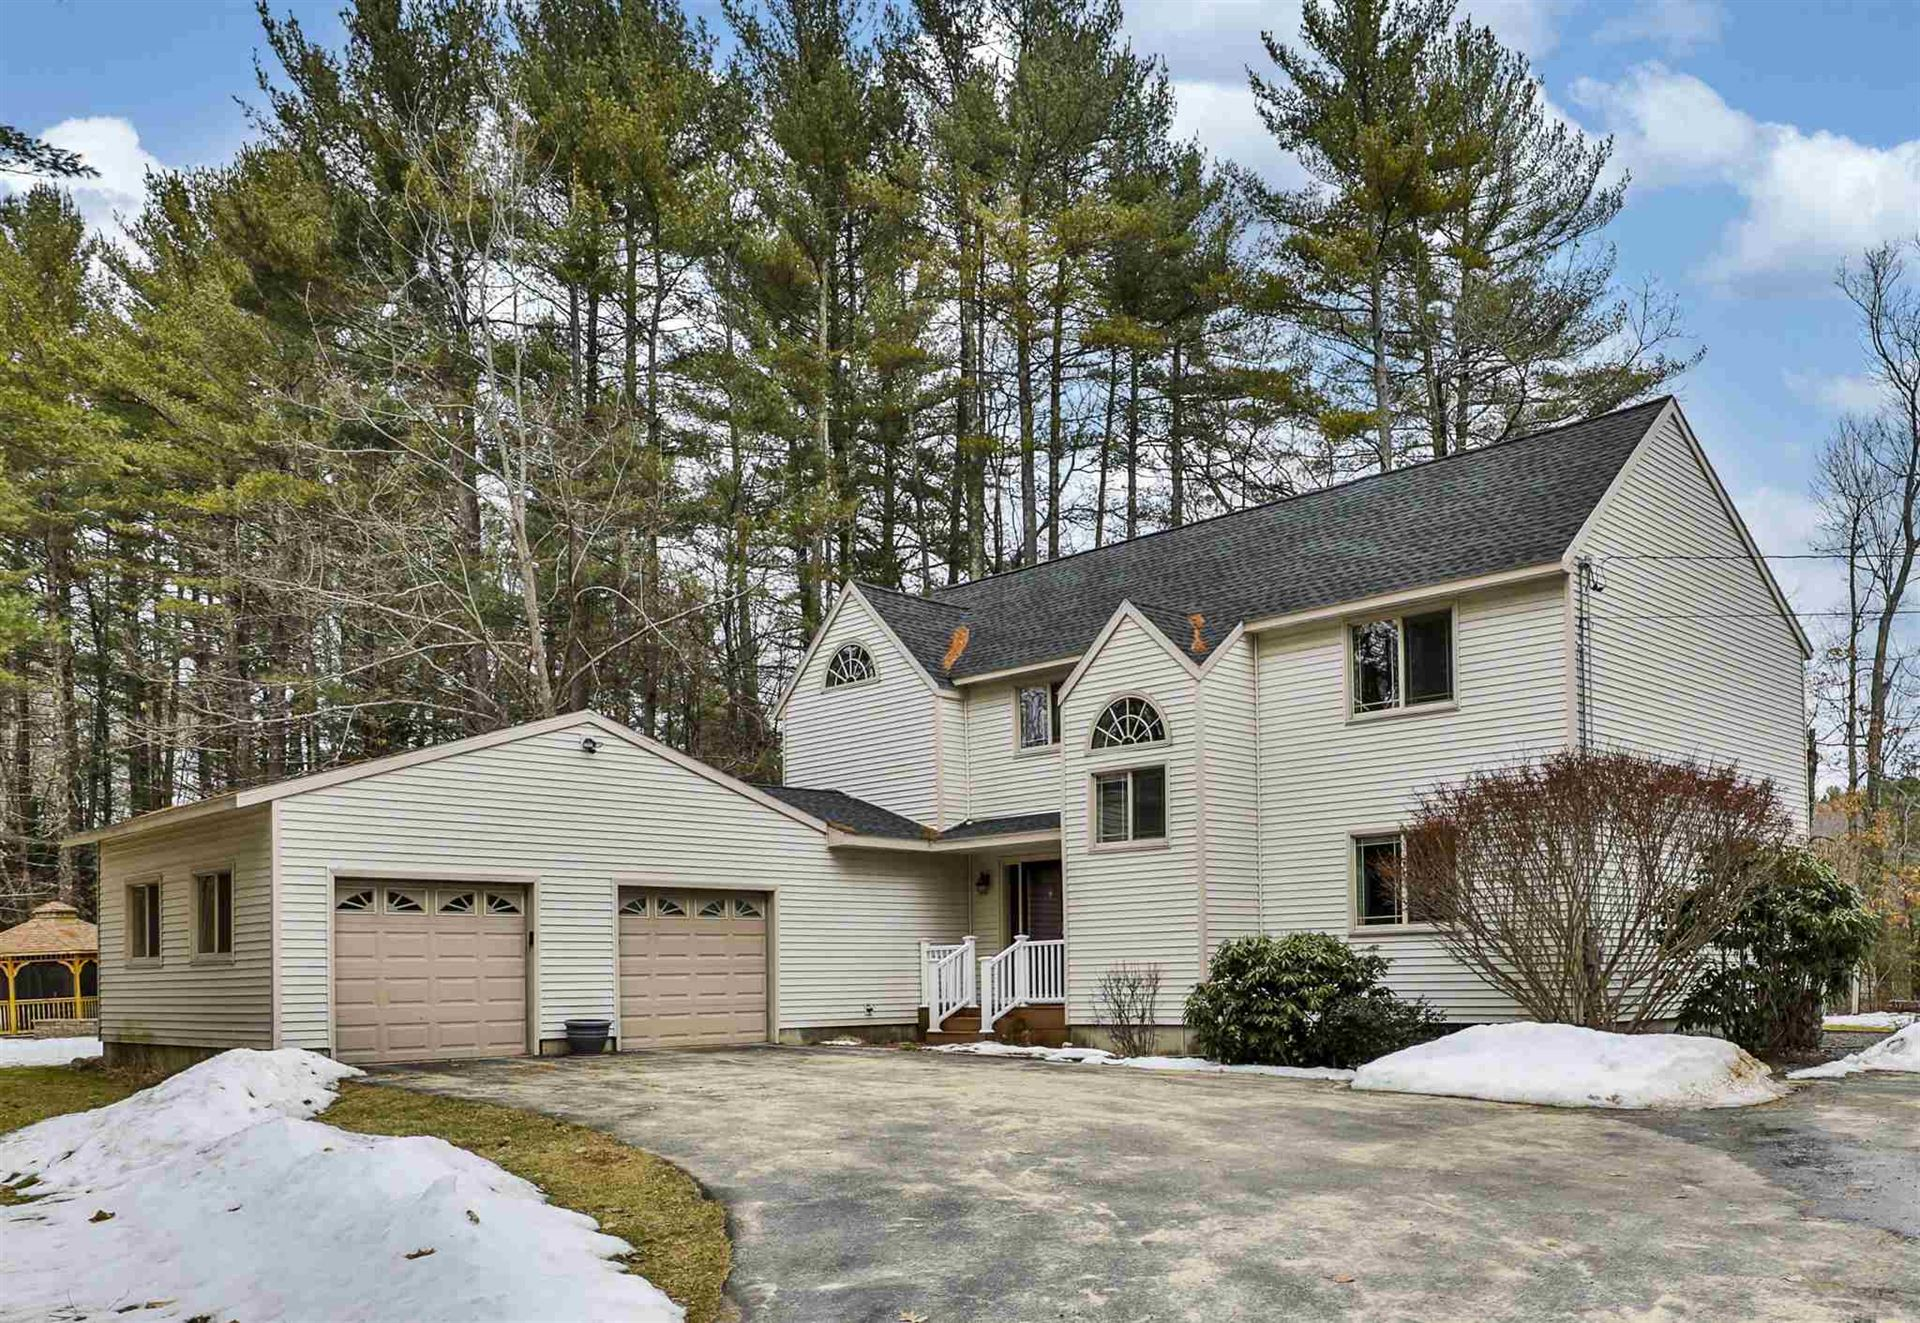 108 Horace Greeley Road, Amherst, NH 03031 - #: 4792958